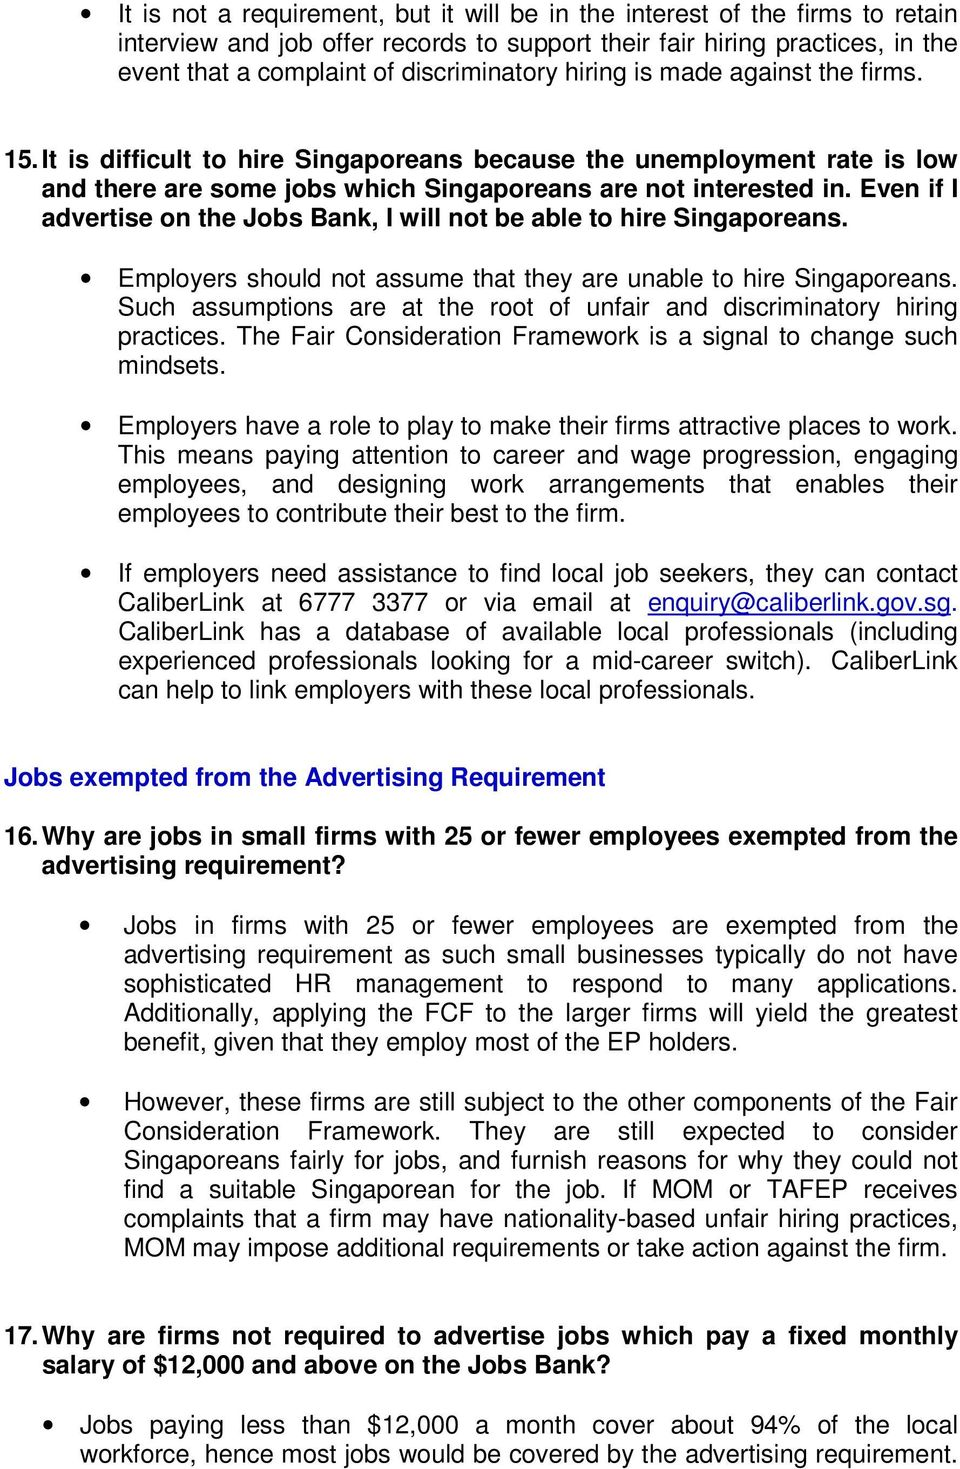 Even if I advertise on the Jobs Bank, I will not be able to hire Singaporeans. Employers should not assume that they are unable to hire Singaporeans.